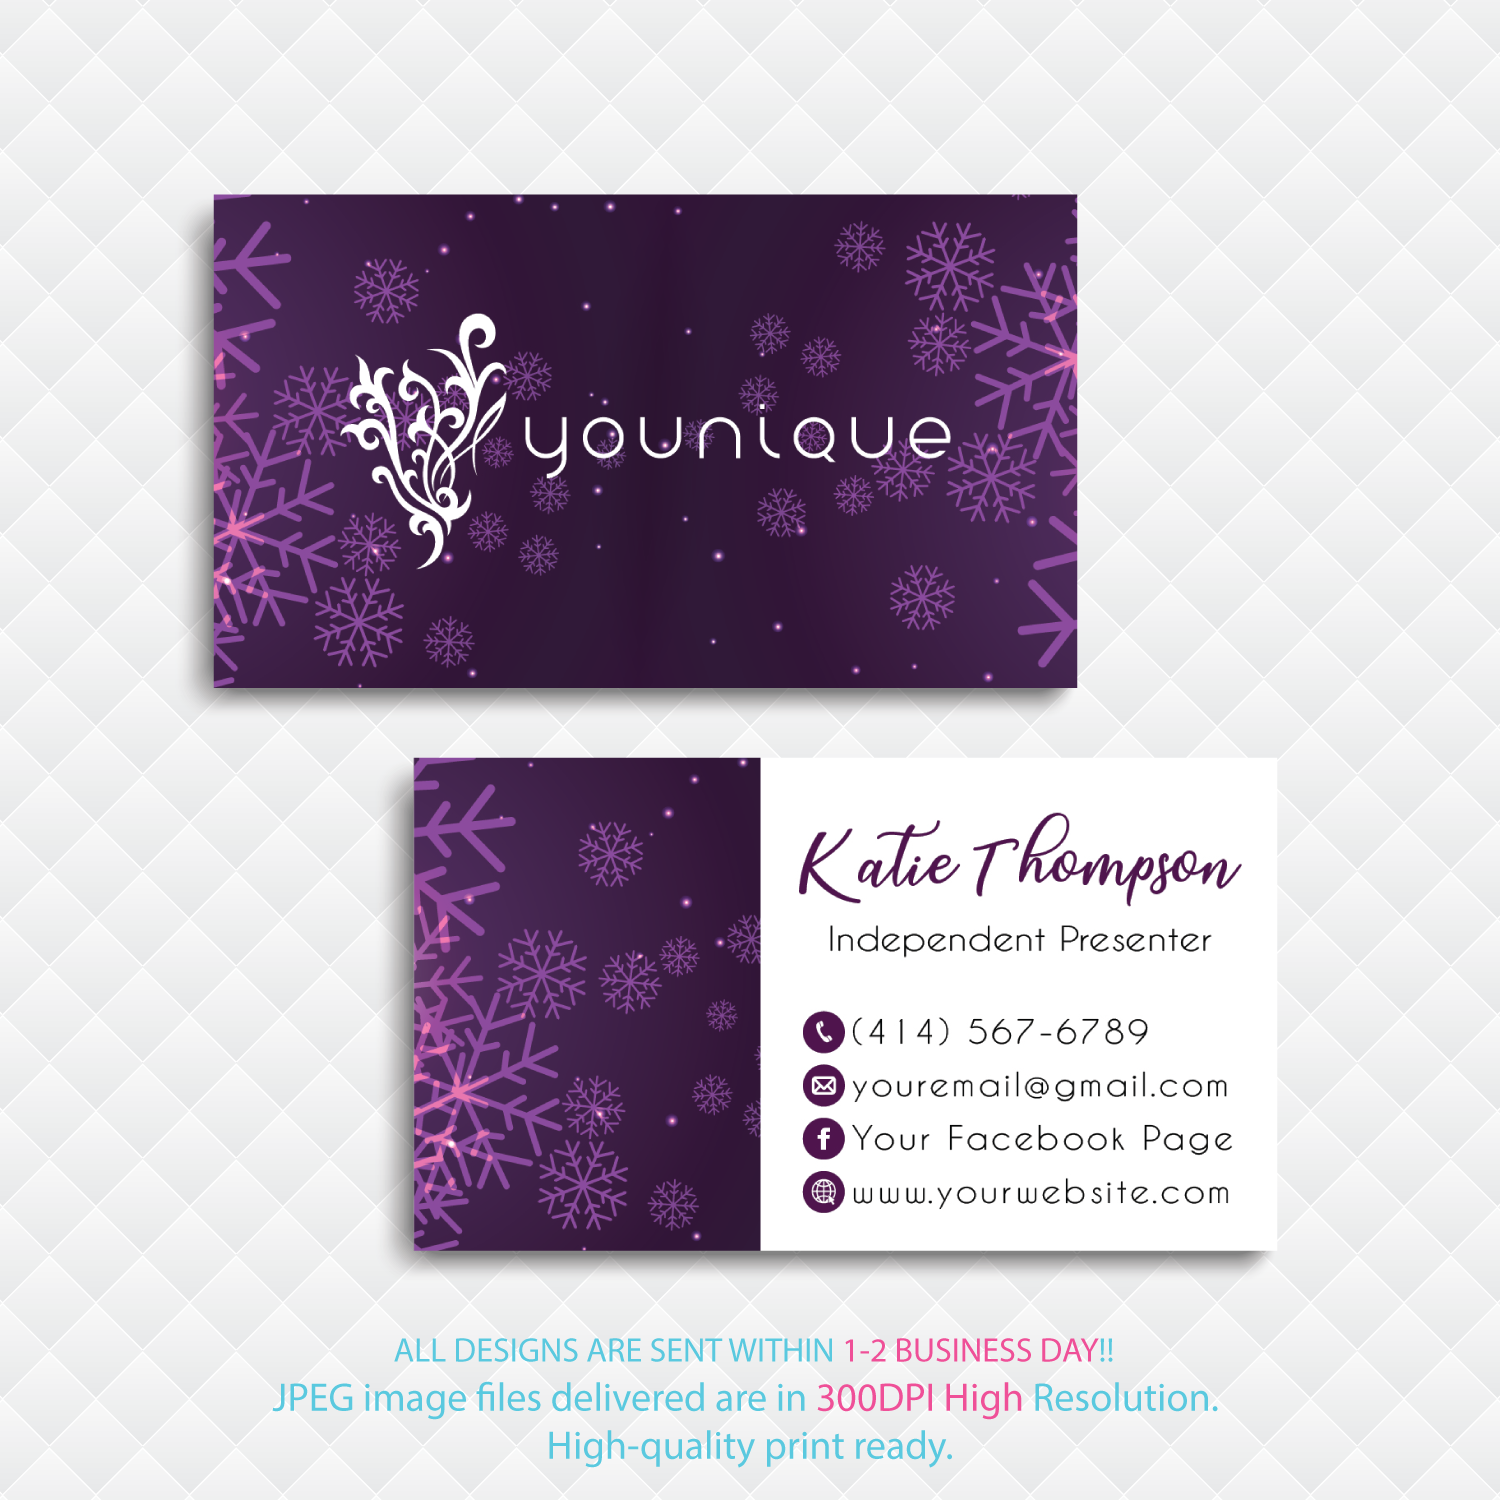 Custom Younique Cards Personalized Younique Business Cards Custom Business Card Younique Business Cards Yq03 Younique Business Cards Printing Business Cards Younique Business